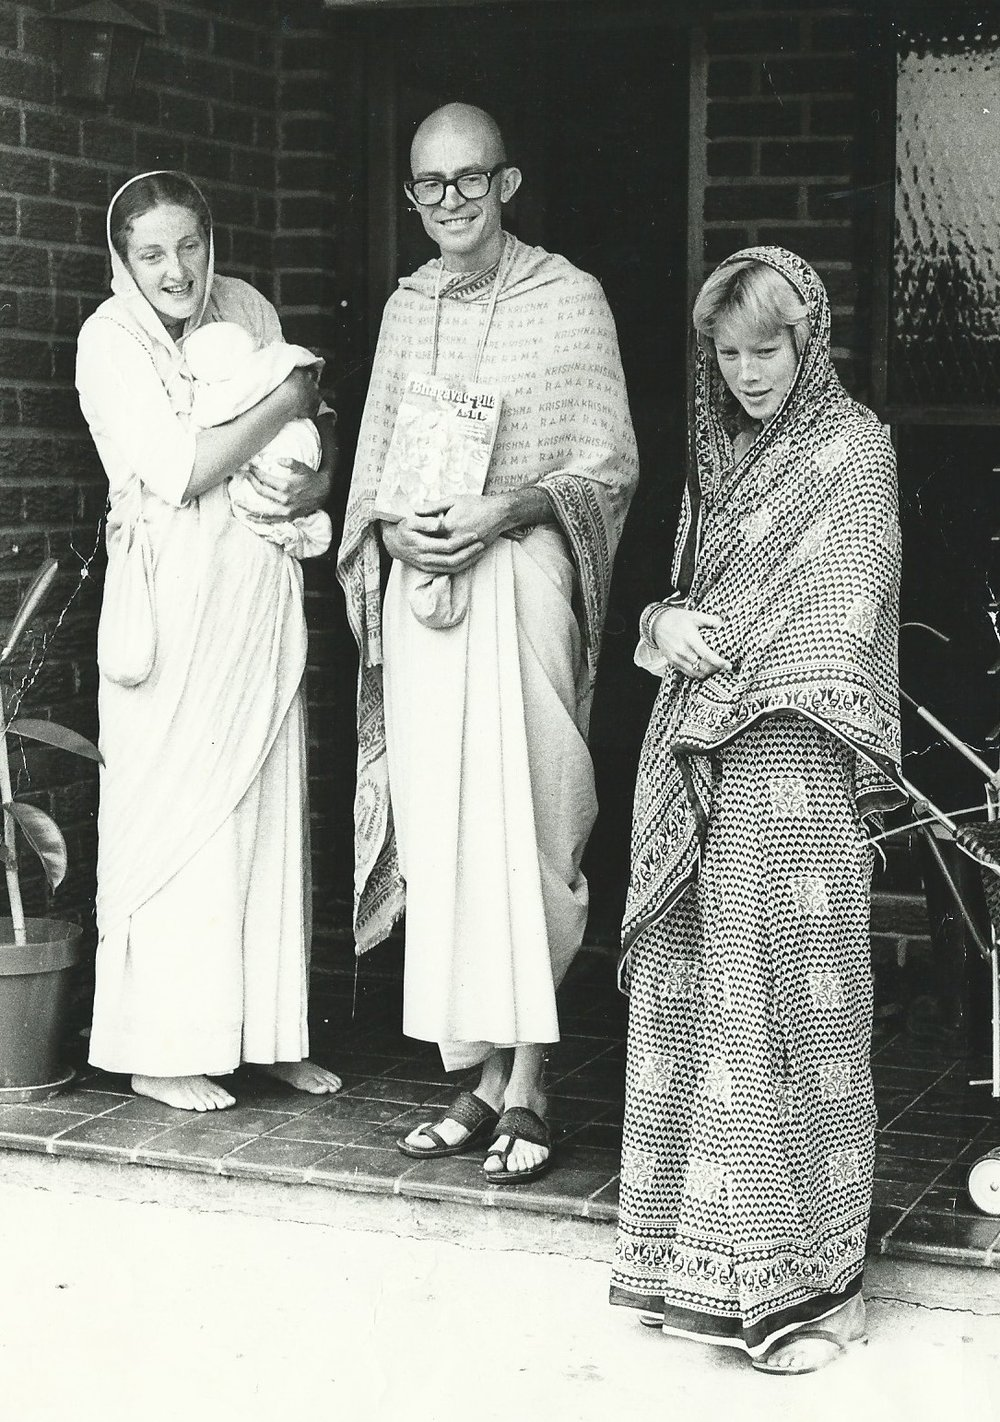 Glenda on the right as a Hare Krishna